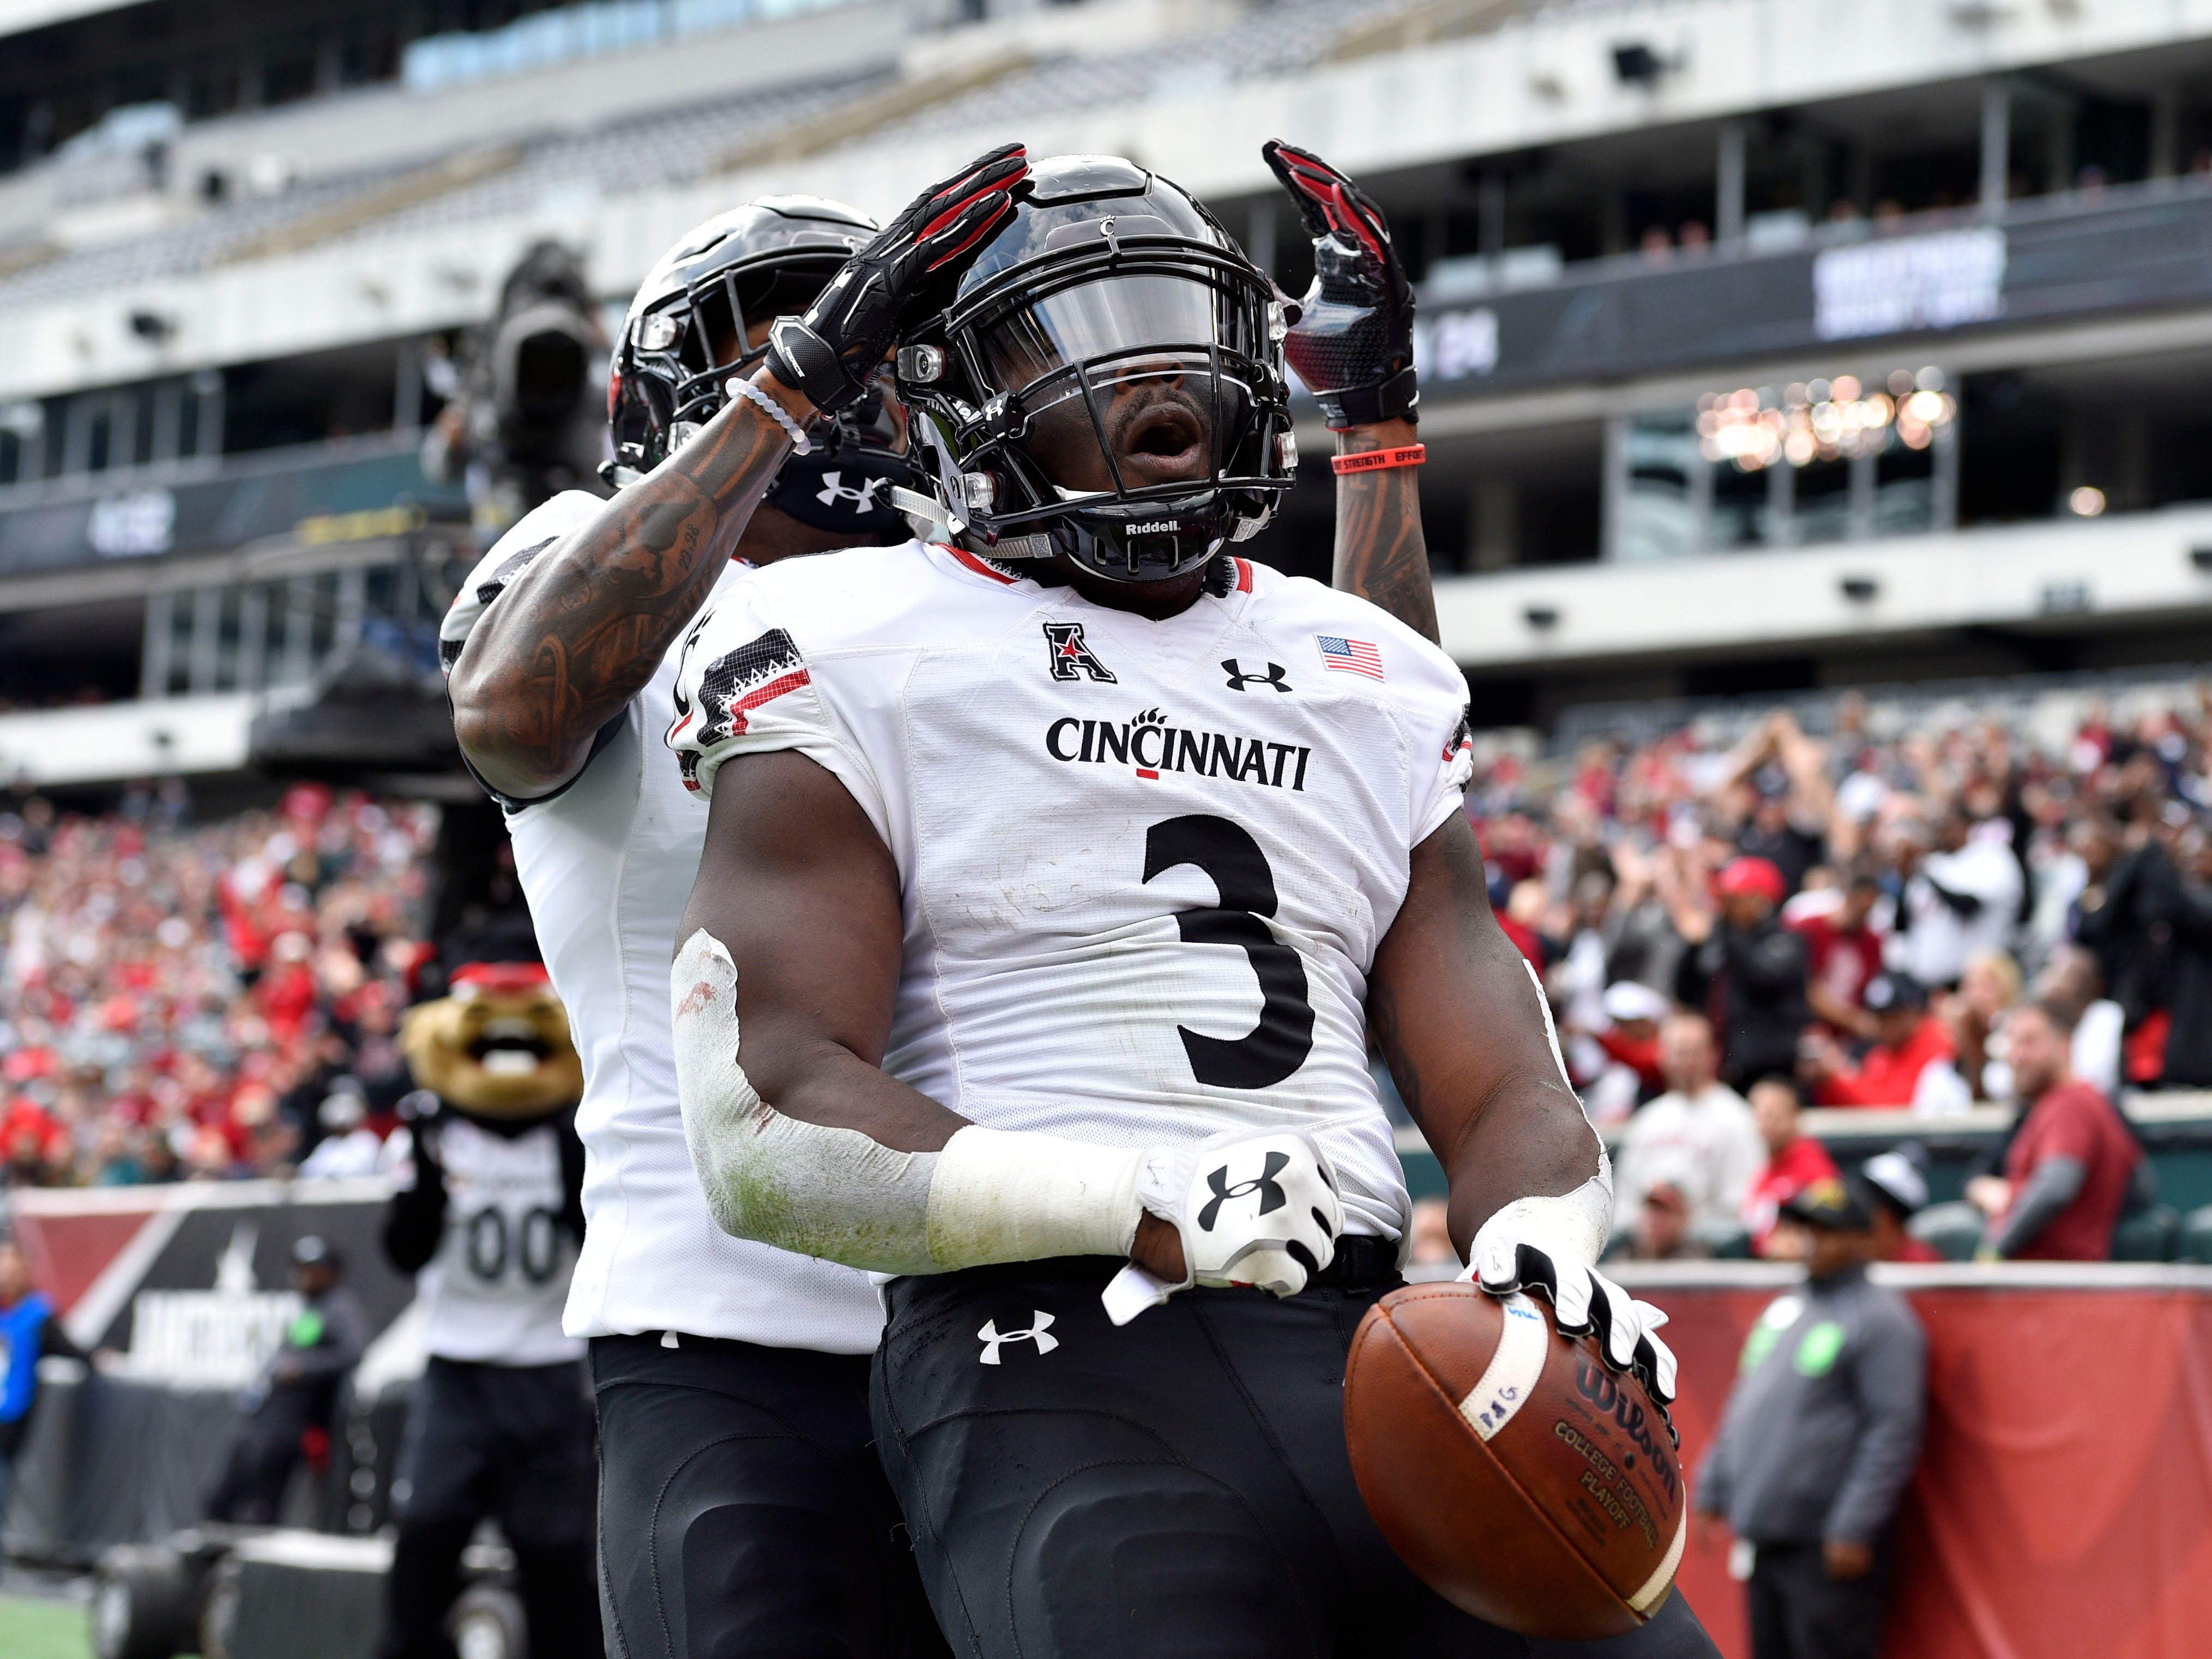 Cincinnati Bearcats running back Michael Warren II (3) celebrates with wide receiver Kahlil Lewis (1) after a first-quarter touchdown against  Temple at Lincoln Financial Field. 20181020_ajw_hb3_015.jpg